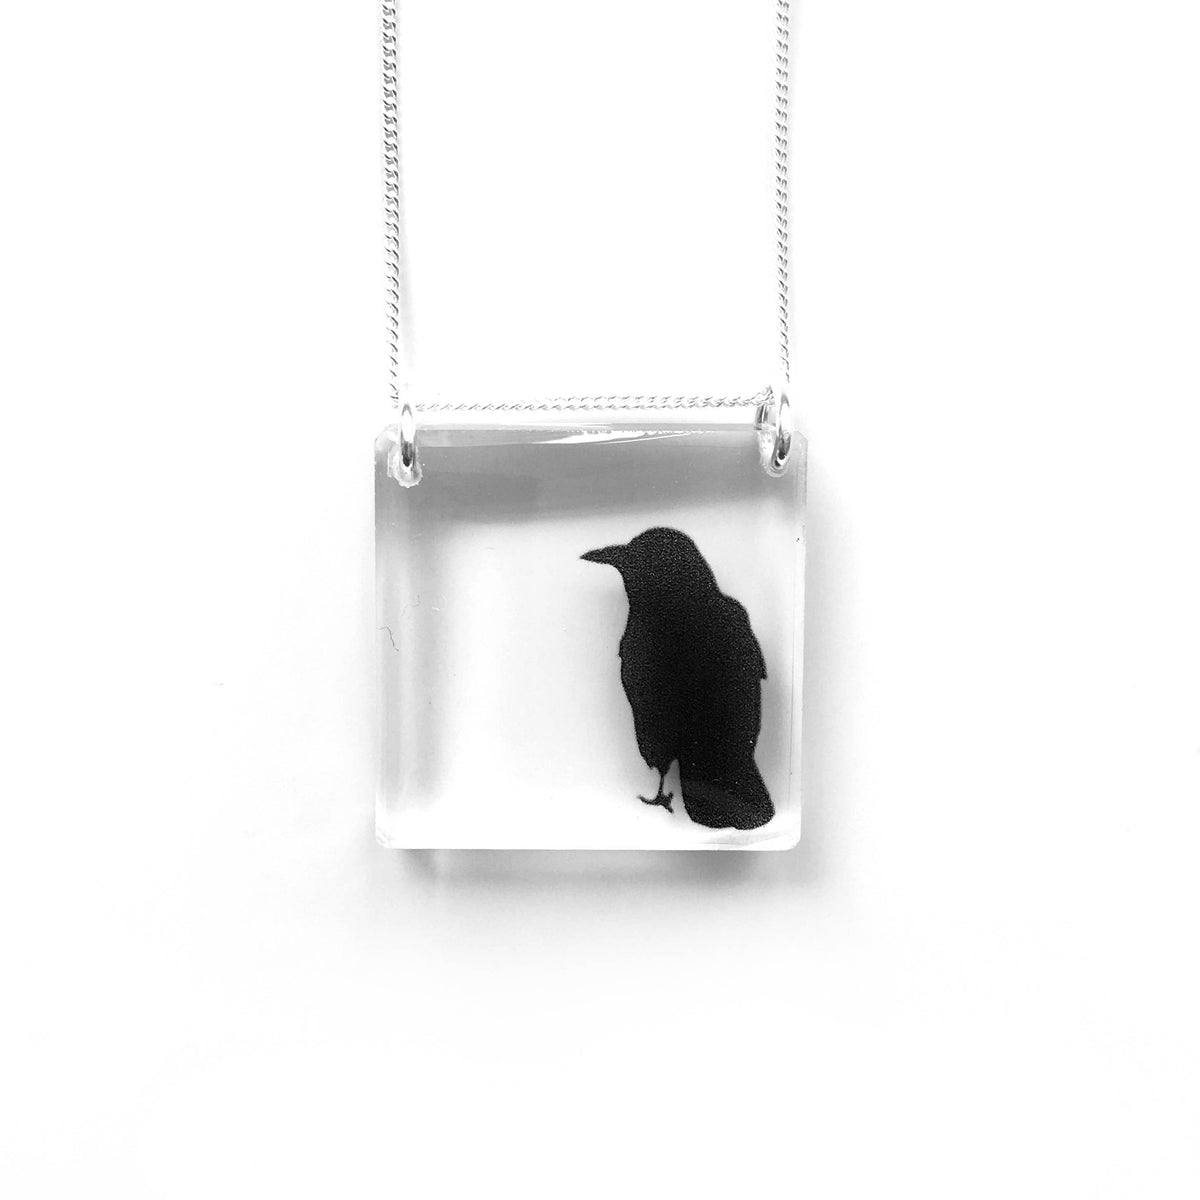 Square Crow Necklace